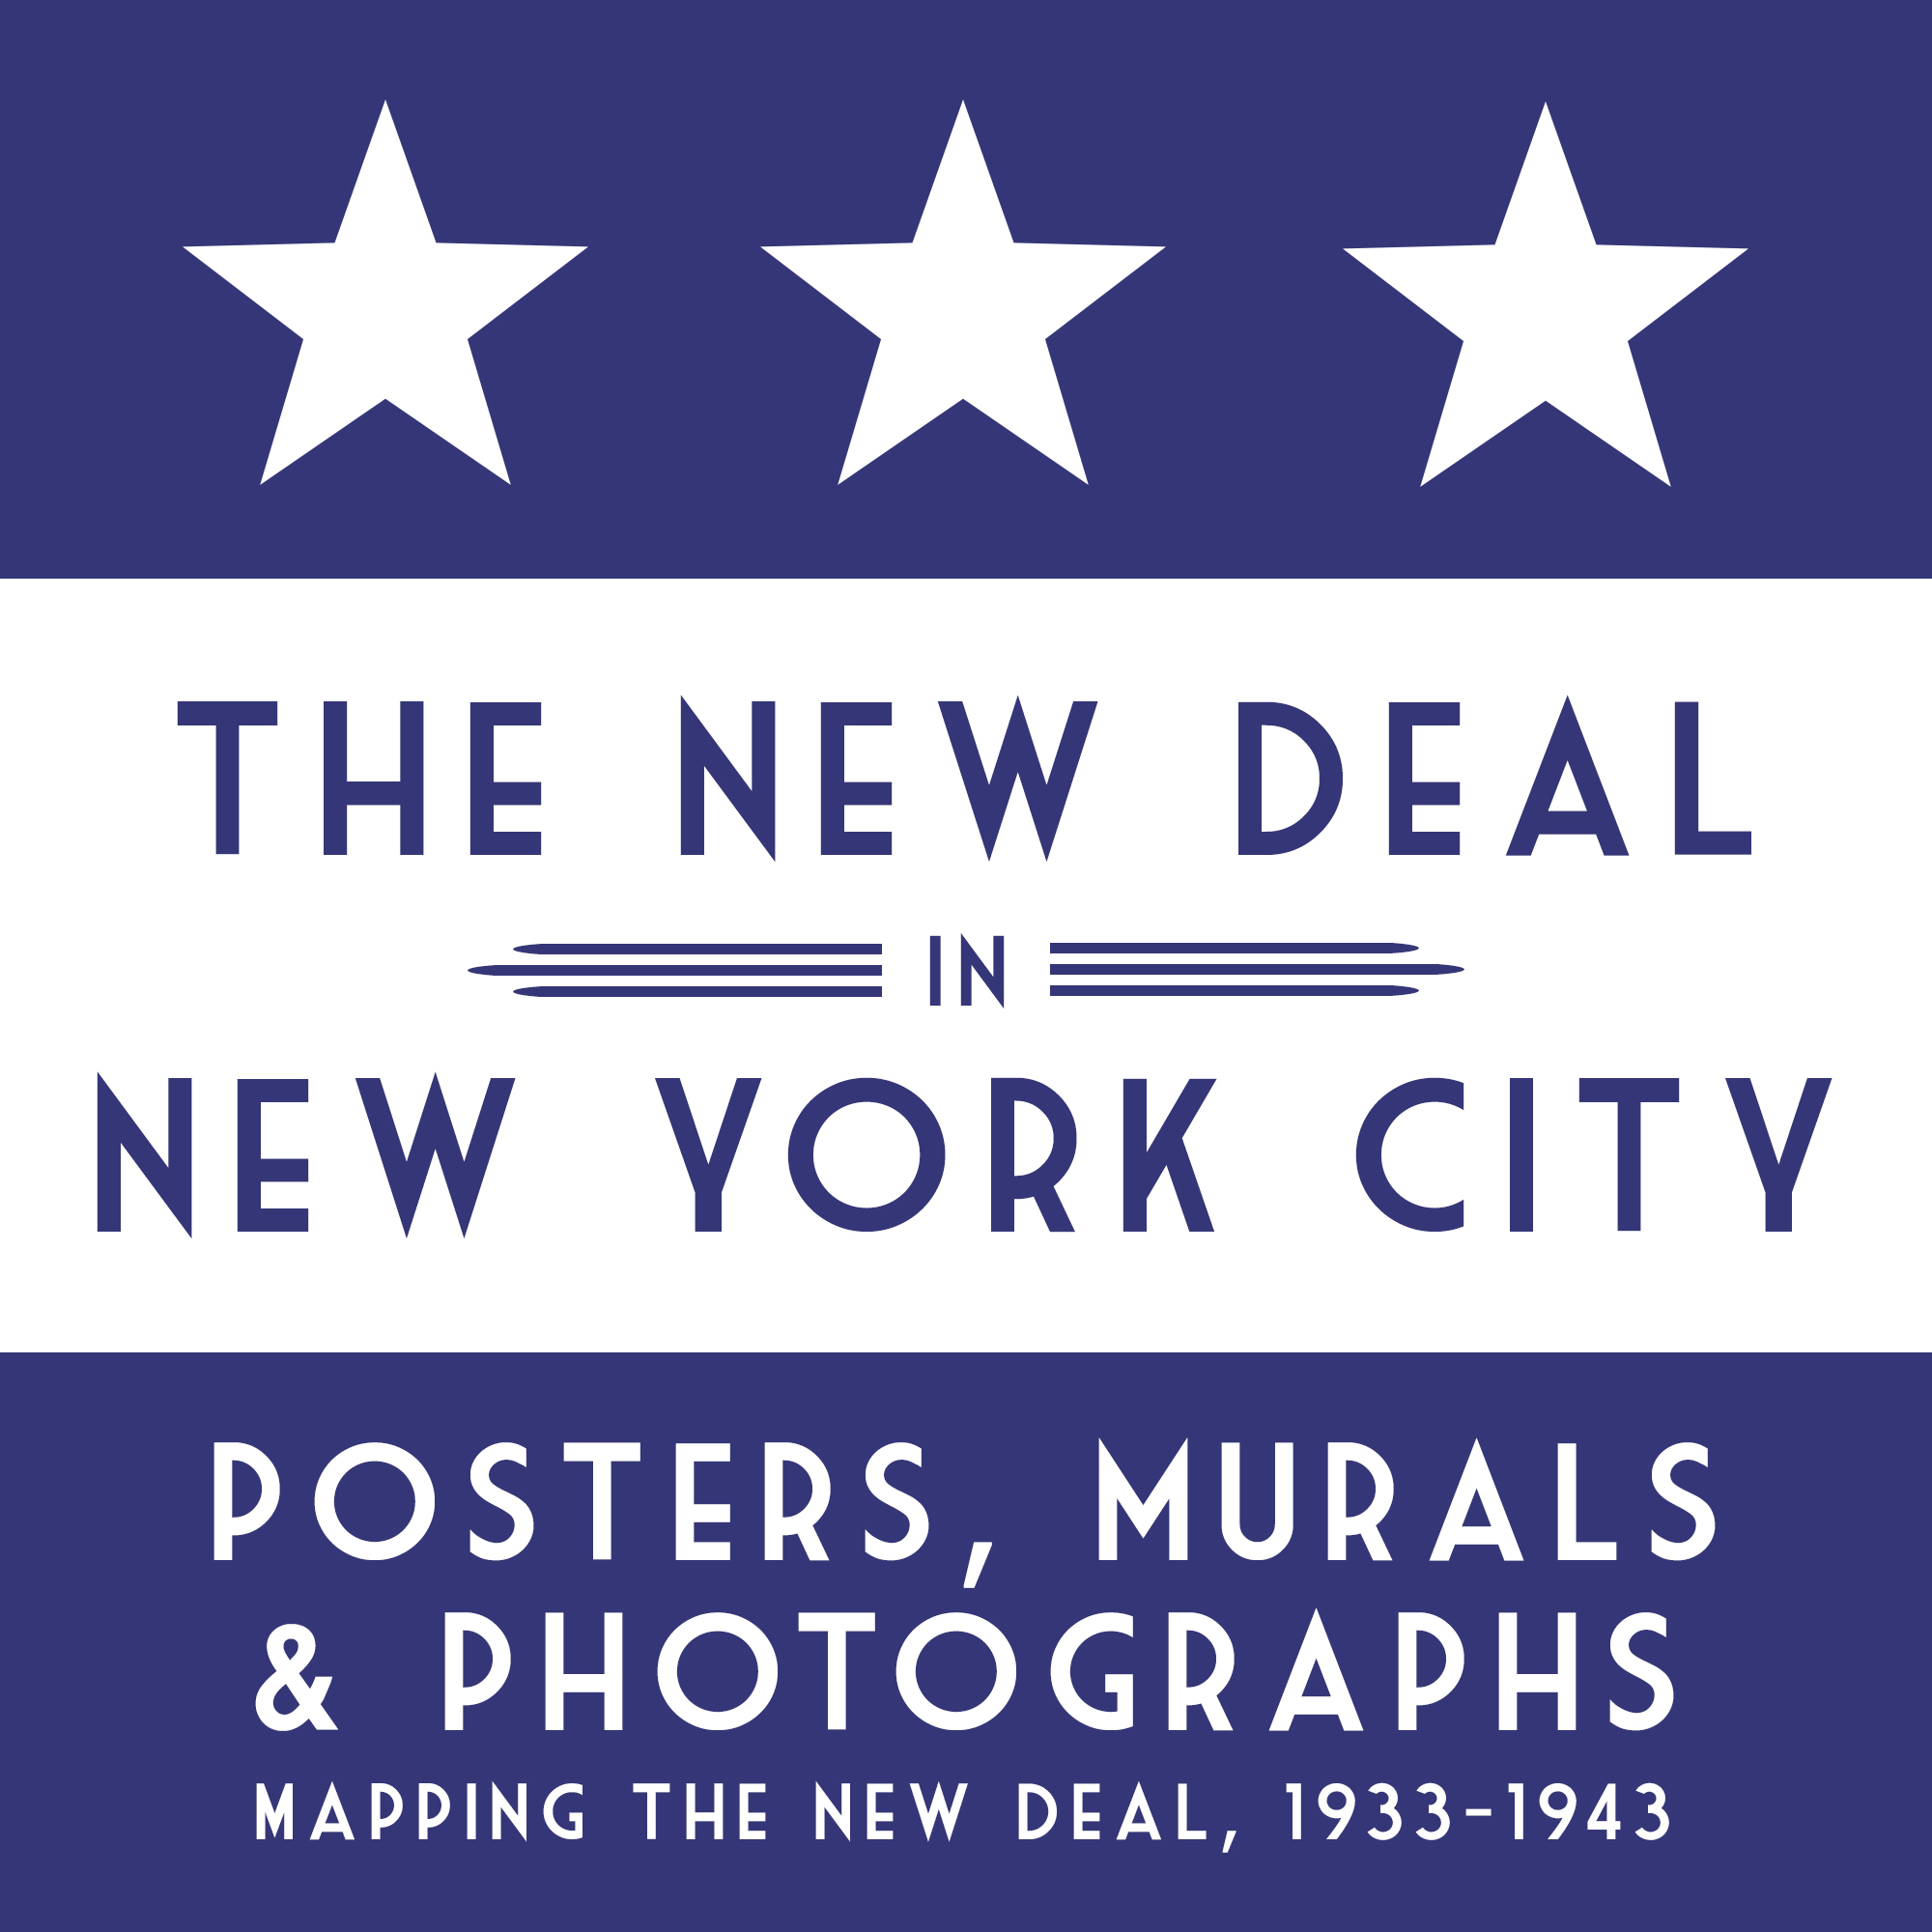 The New Deal in New York City